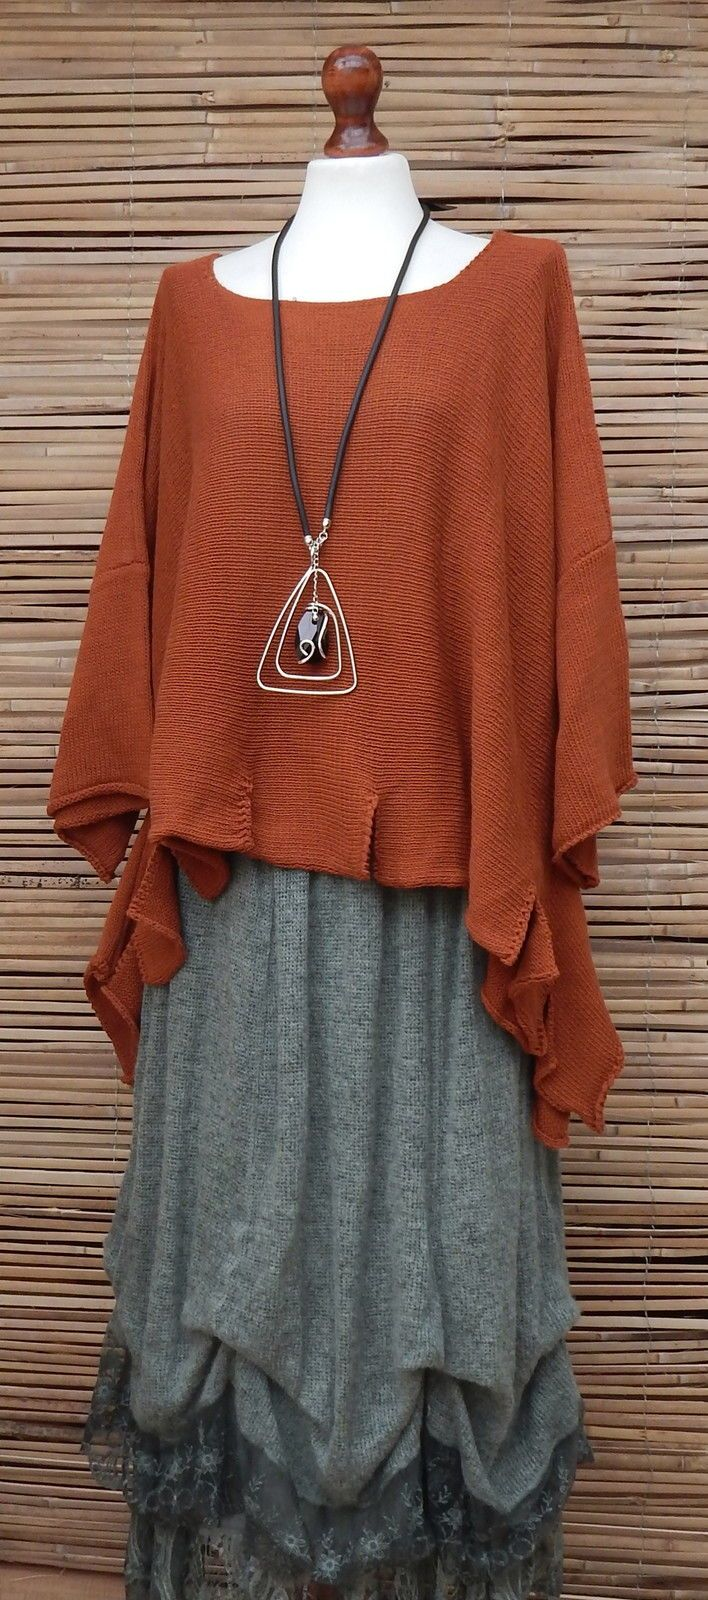 Lagenlook Knit Quirky Boho Hippy Eccentric Jumper Rust XL XXL XXXL OSFA Italy | eBay